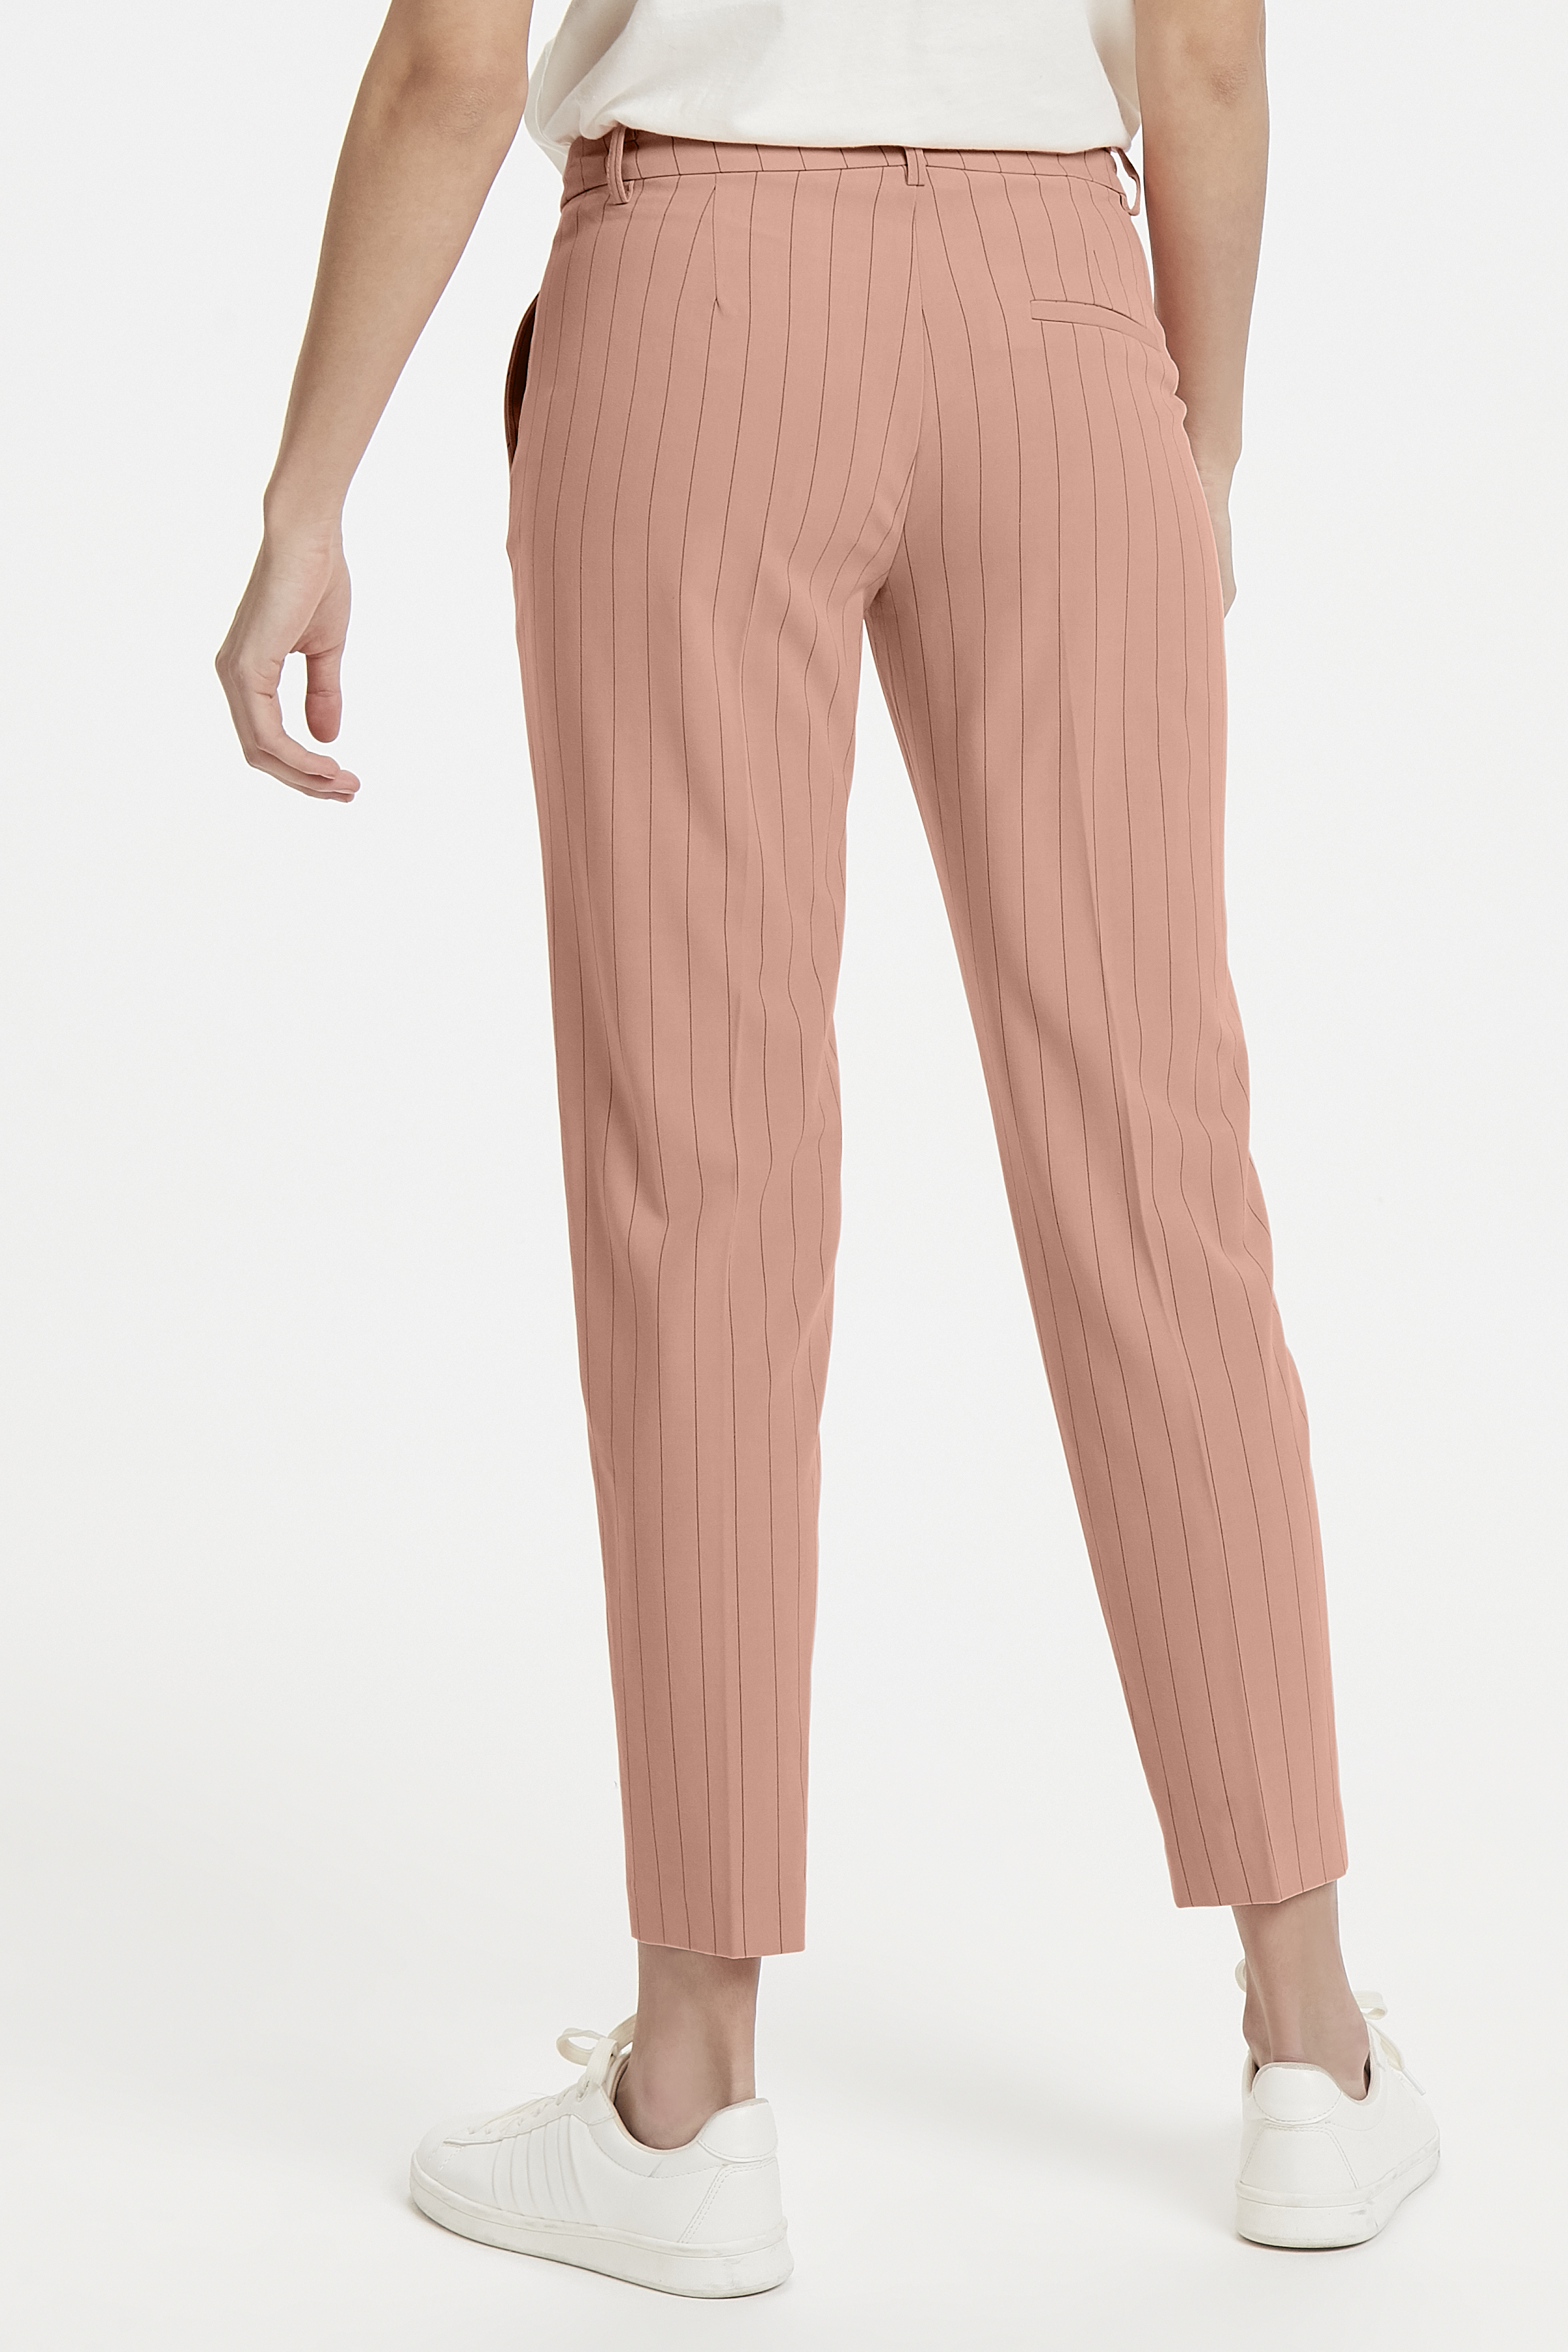 Coral Almond Pants Casual – Køb Coral Almond Pants Casual fra str. 34-42 her